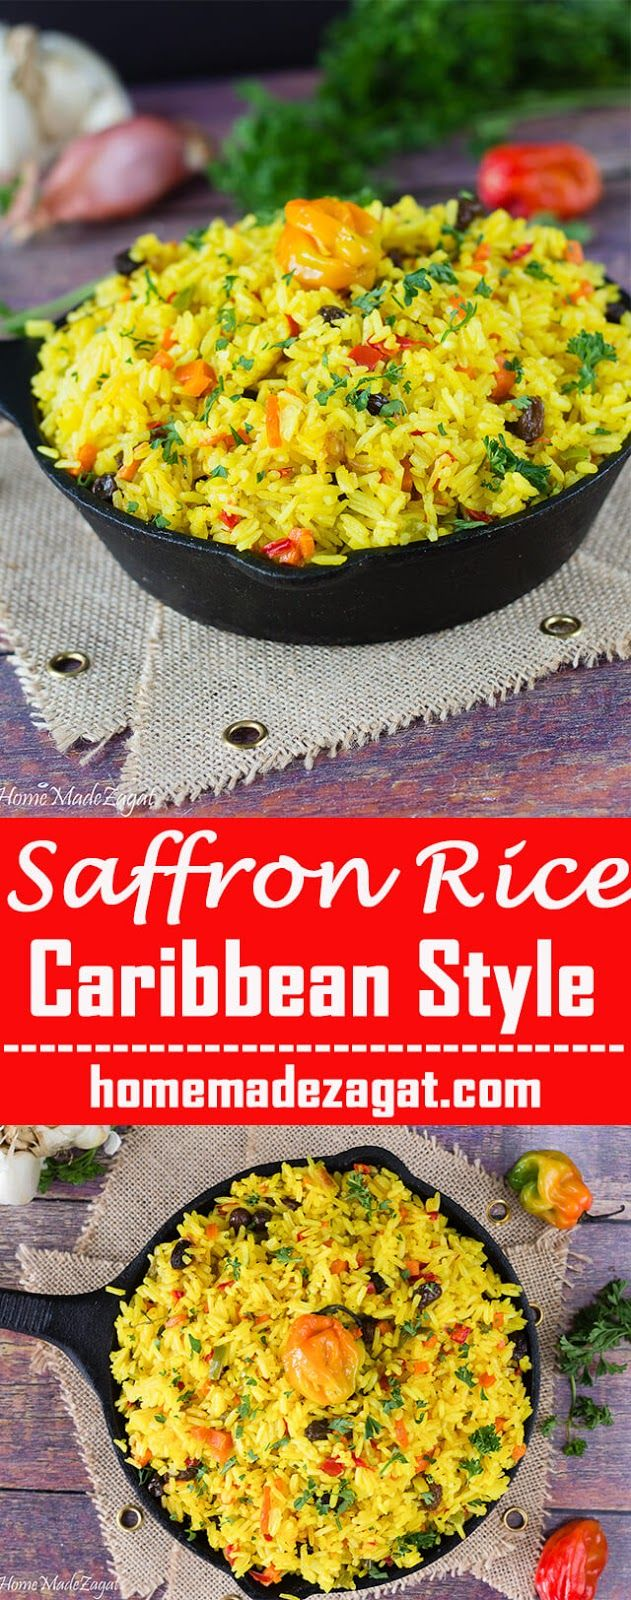 Yellow Saffron (Turmeric)  Rice - Caribbean Style #seasonedricerecipes